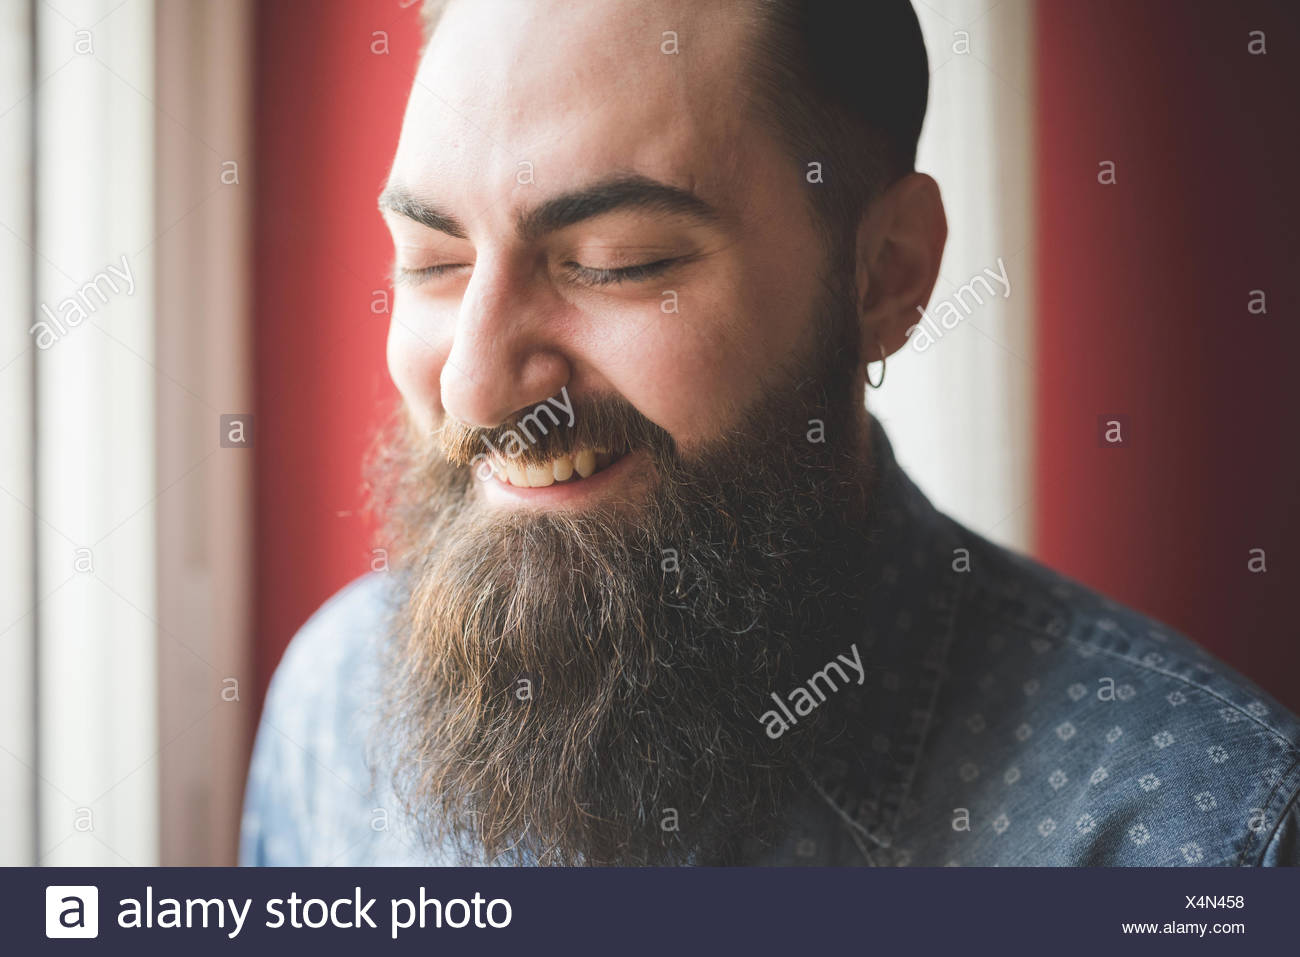 Portrait of young bearded man - Stock Image